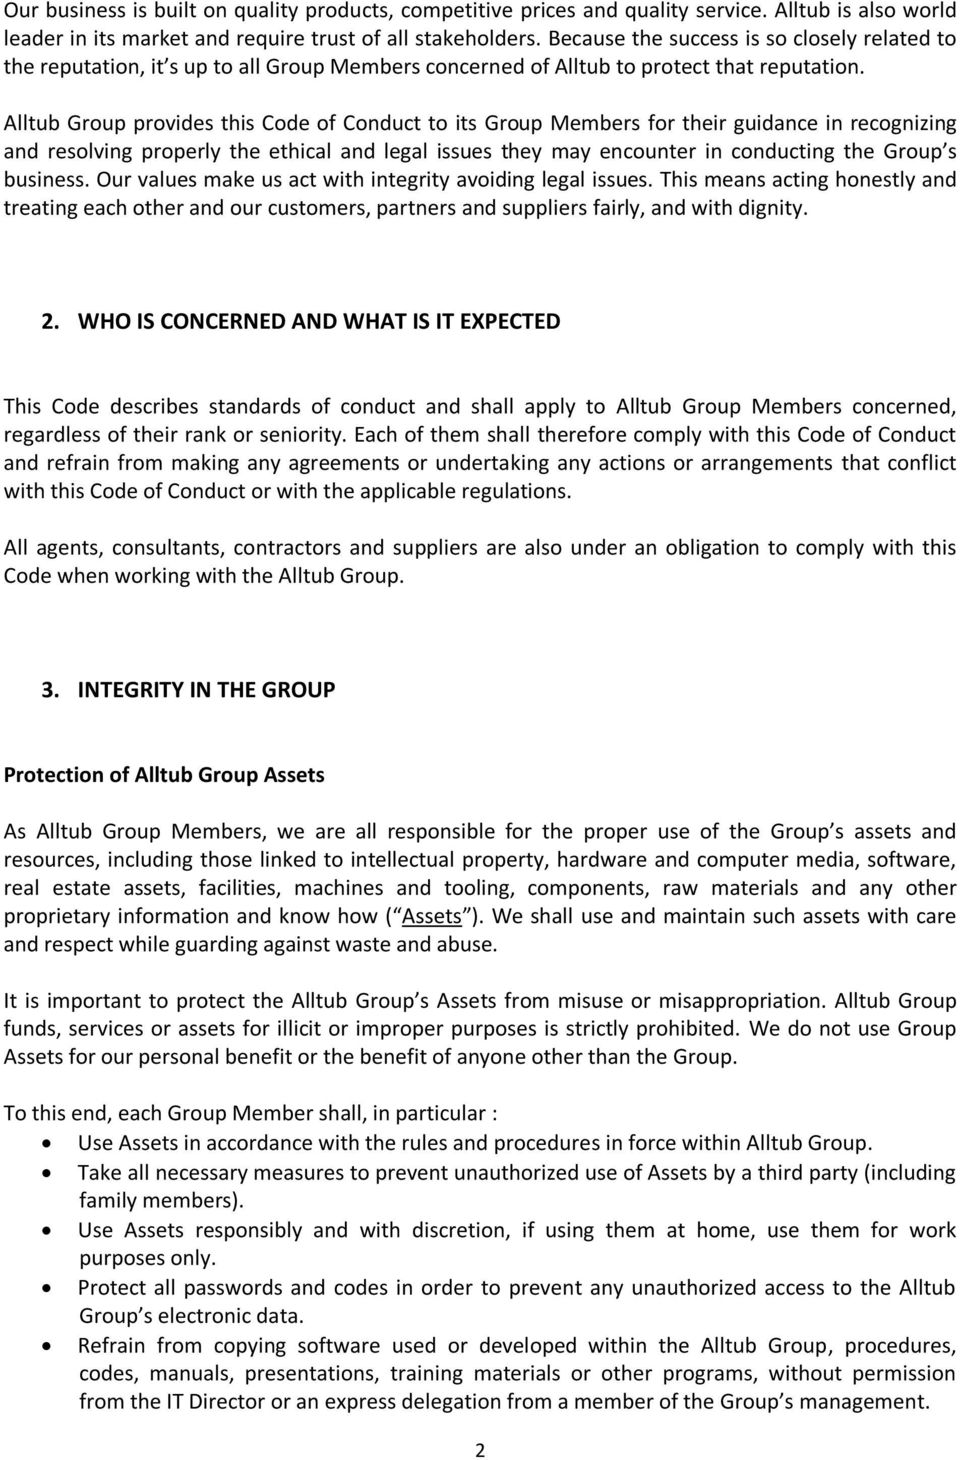 Alltub Group provides this Code of Conduct to its Group Members for their guidance in recognizing and resolving properly the ethical and legal issues they may encounter in conducting the Group s